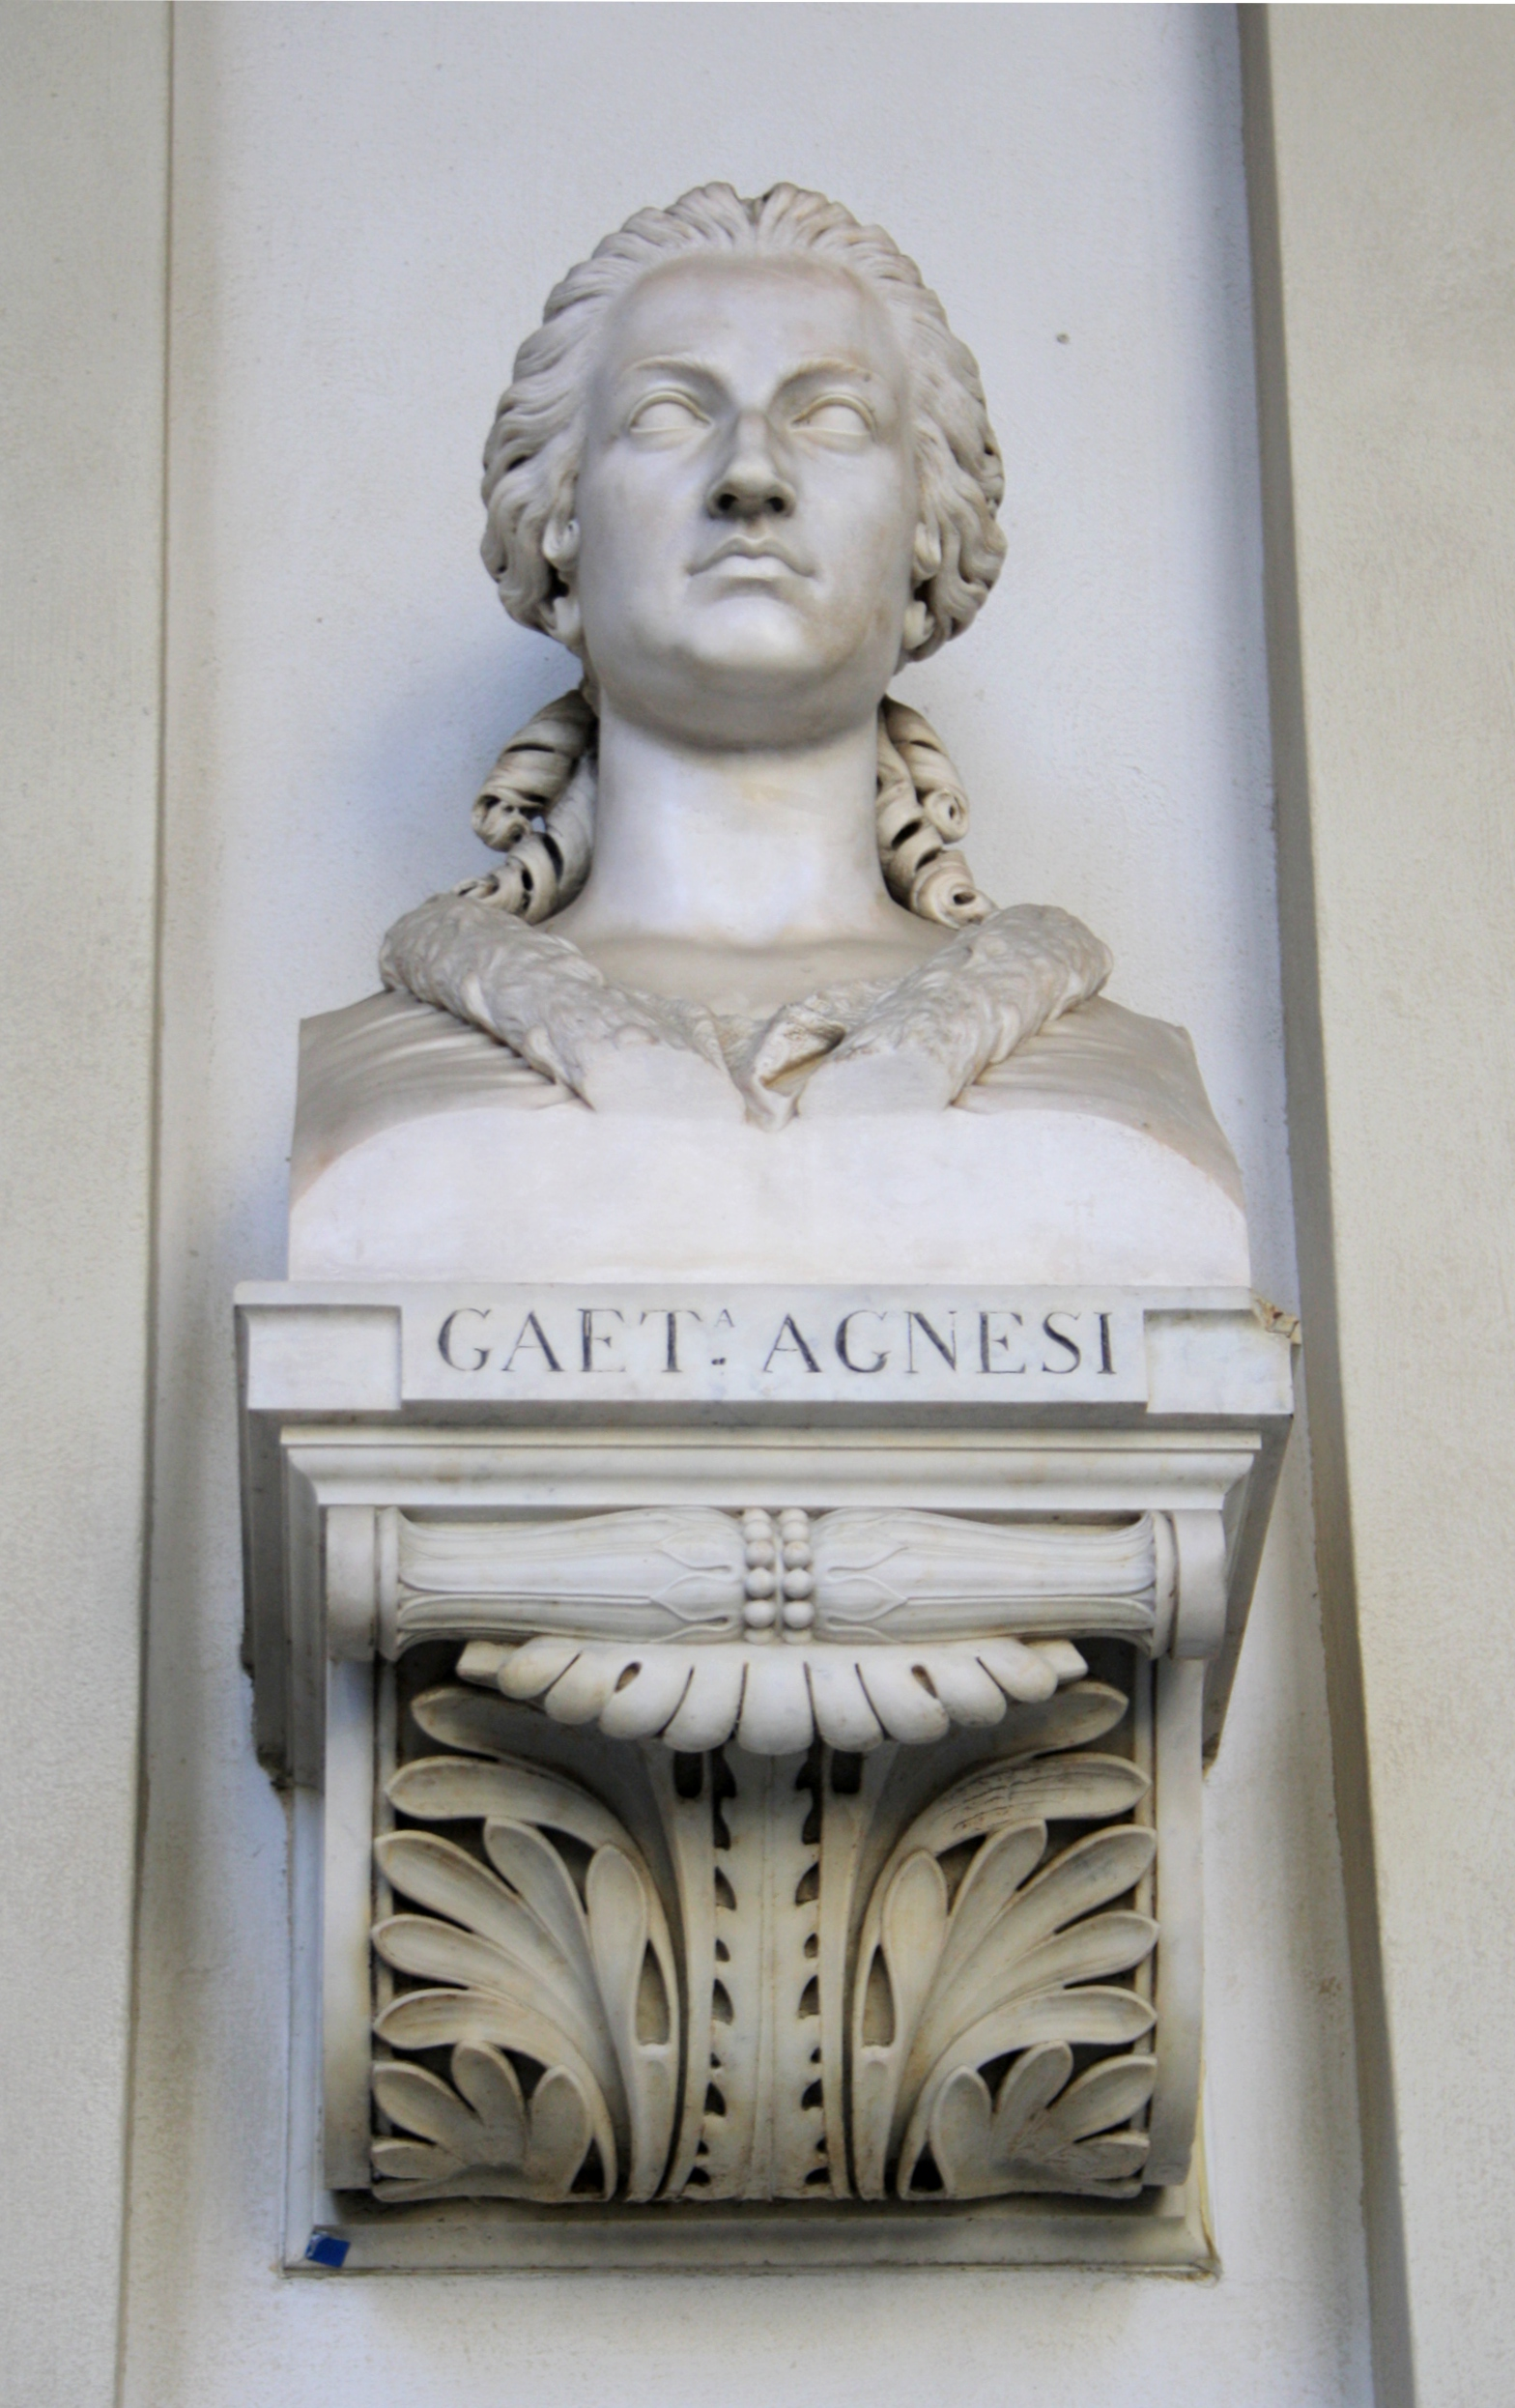 An introduction to the life of maria agnesi an important woman in mathematics